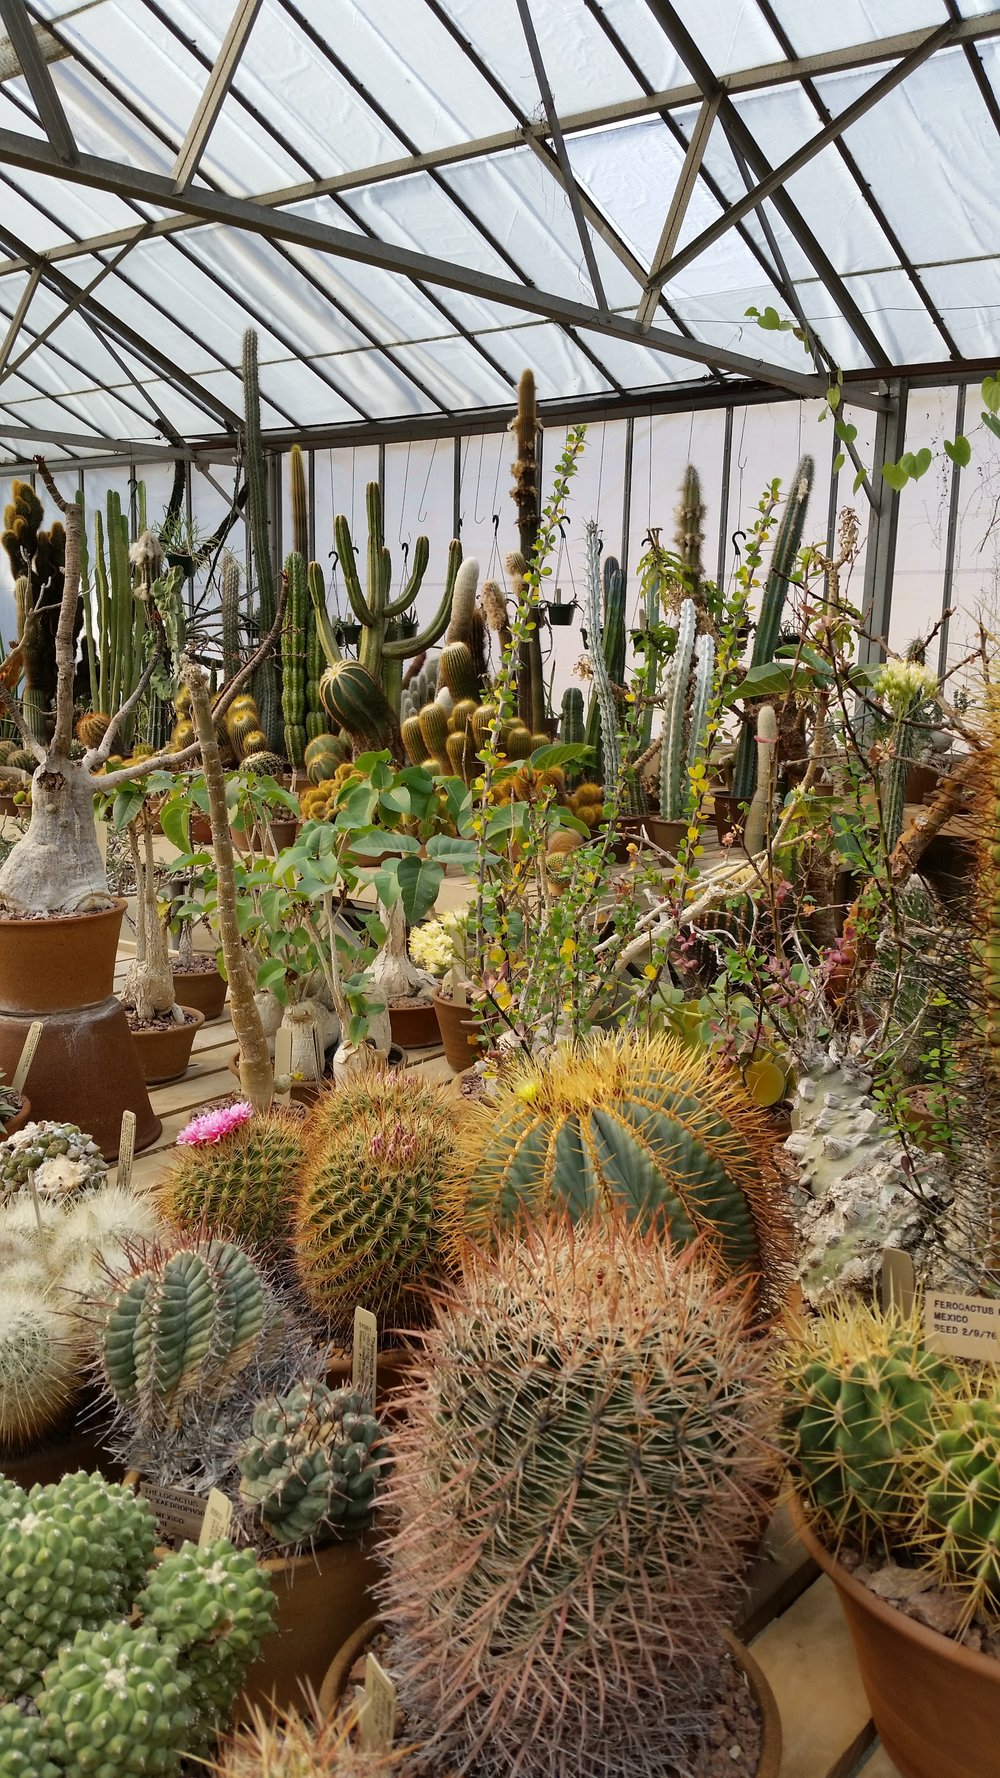 """Huntington Library, Art Collections, and Botanical Gardens.Los Angeles.""""…spectacular gardens spread across 120 acres"""".This is a learning lab and Plants Go Global inspiration for me as a Huntington Reader/researcher. -"""